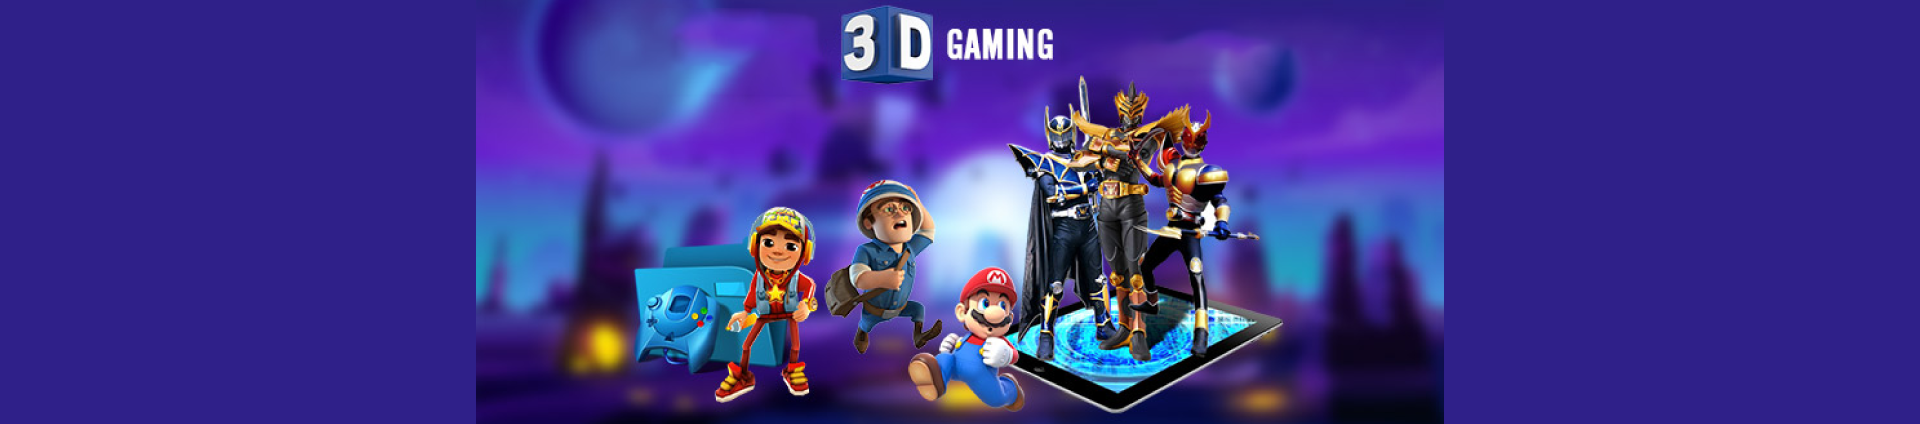 Mobile 3D Games